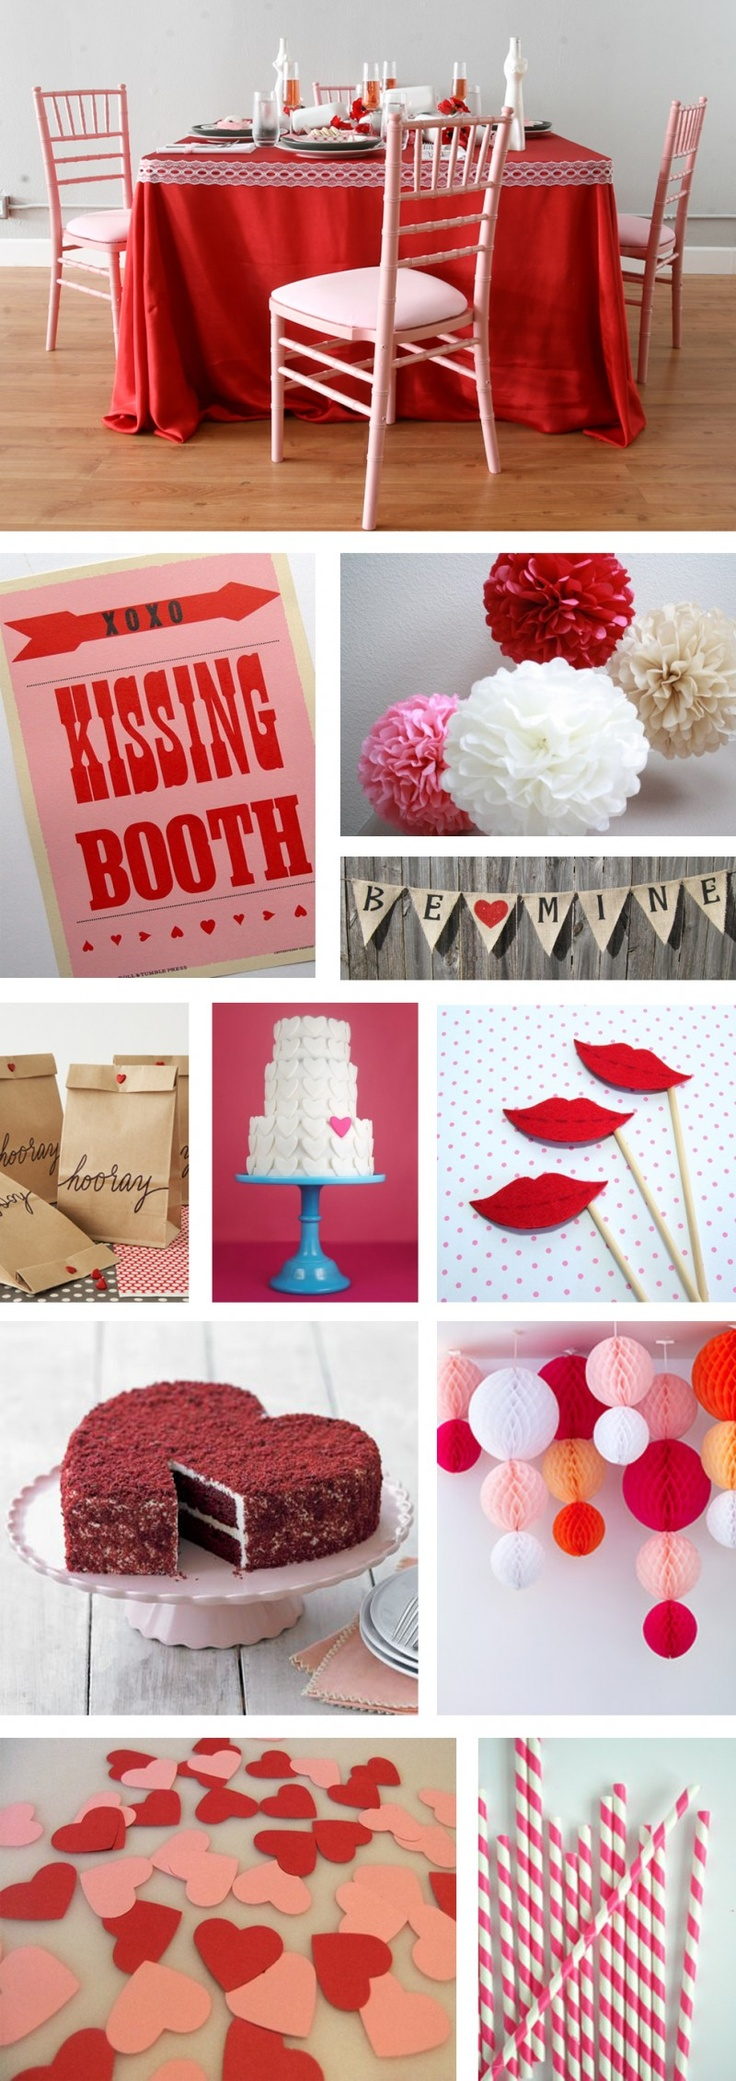 7 best valentines day theme party images on pinterest valentine party valentines day party. Black Bedroom Furniture Sets. Home Design Ideas